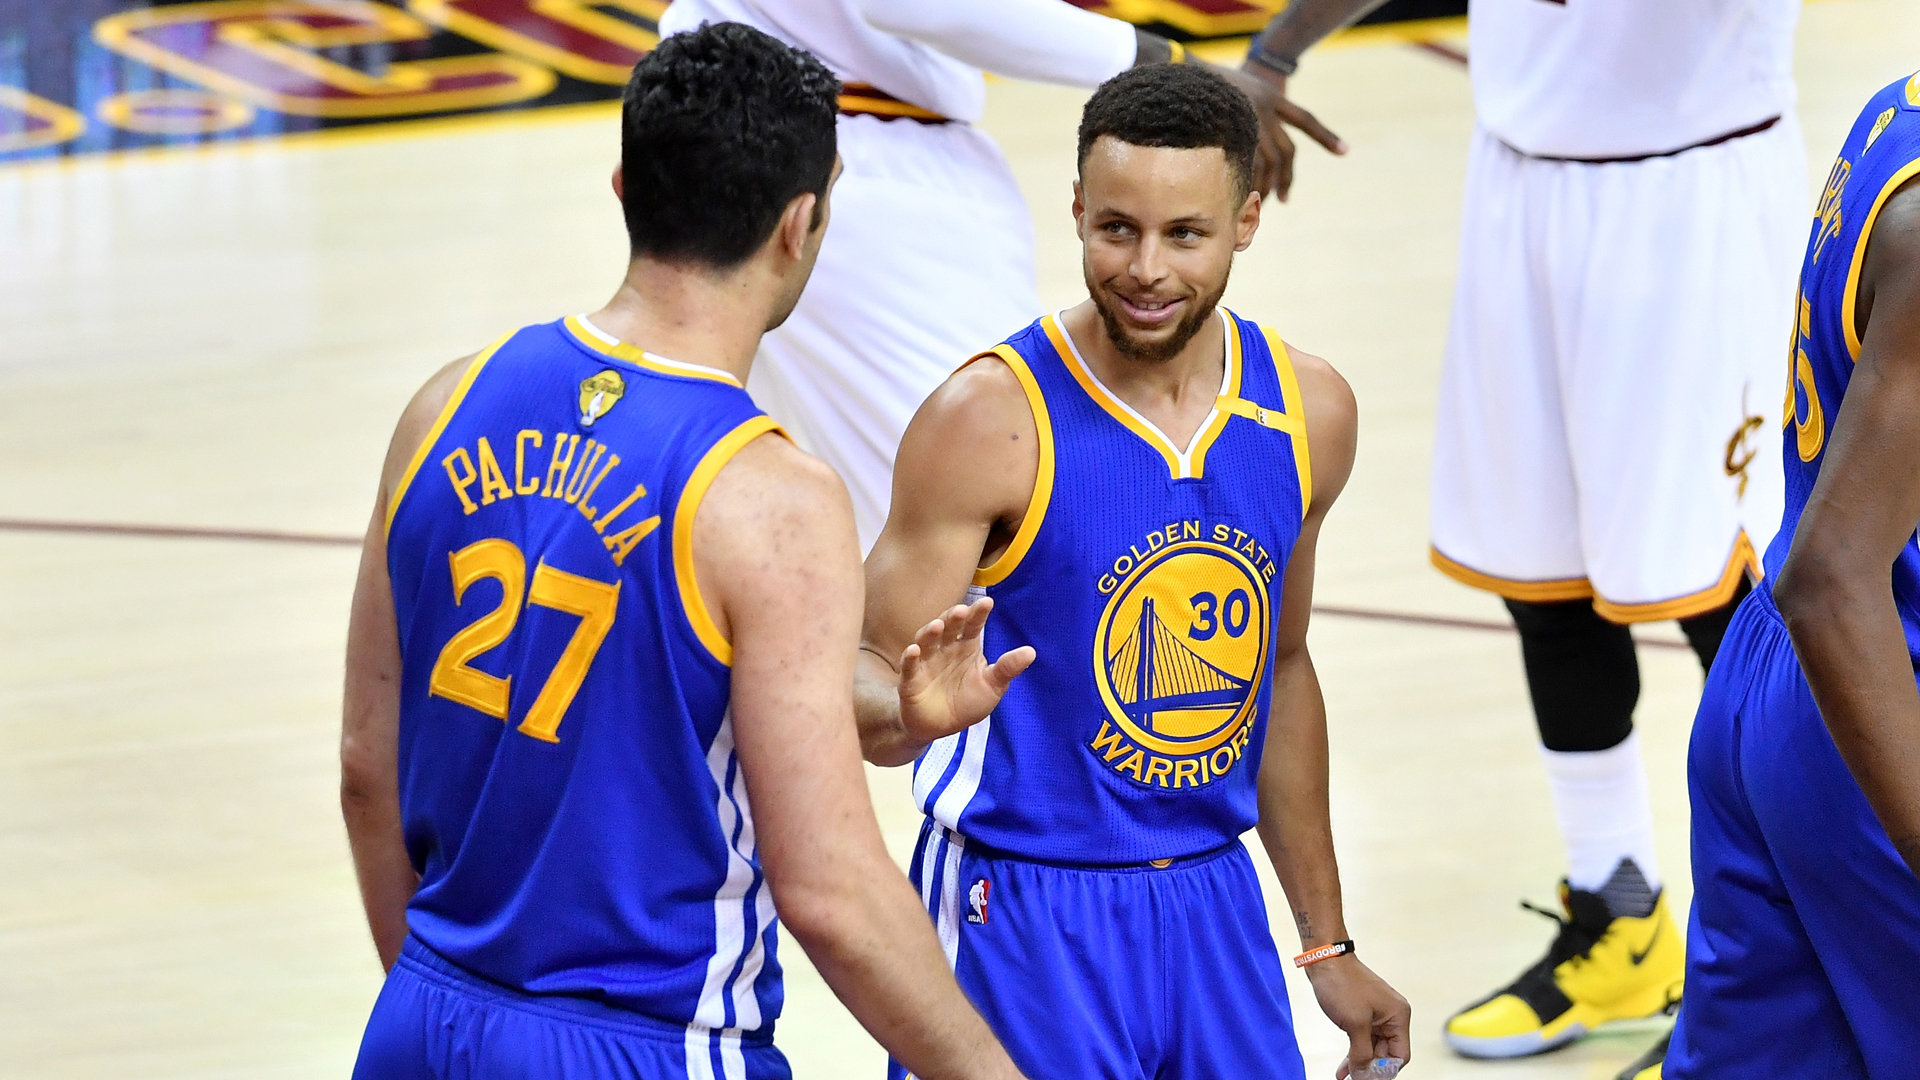 Warriors unanimously decline White House visit